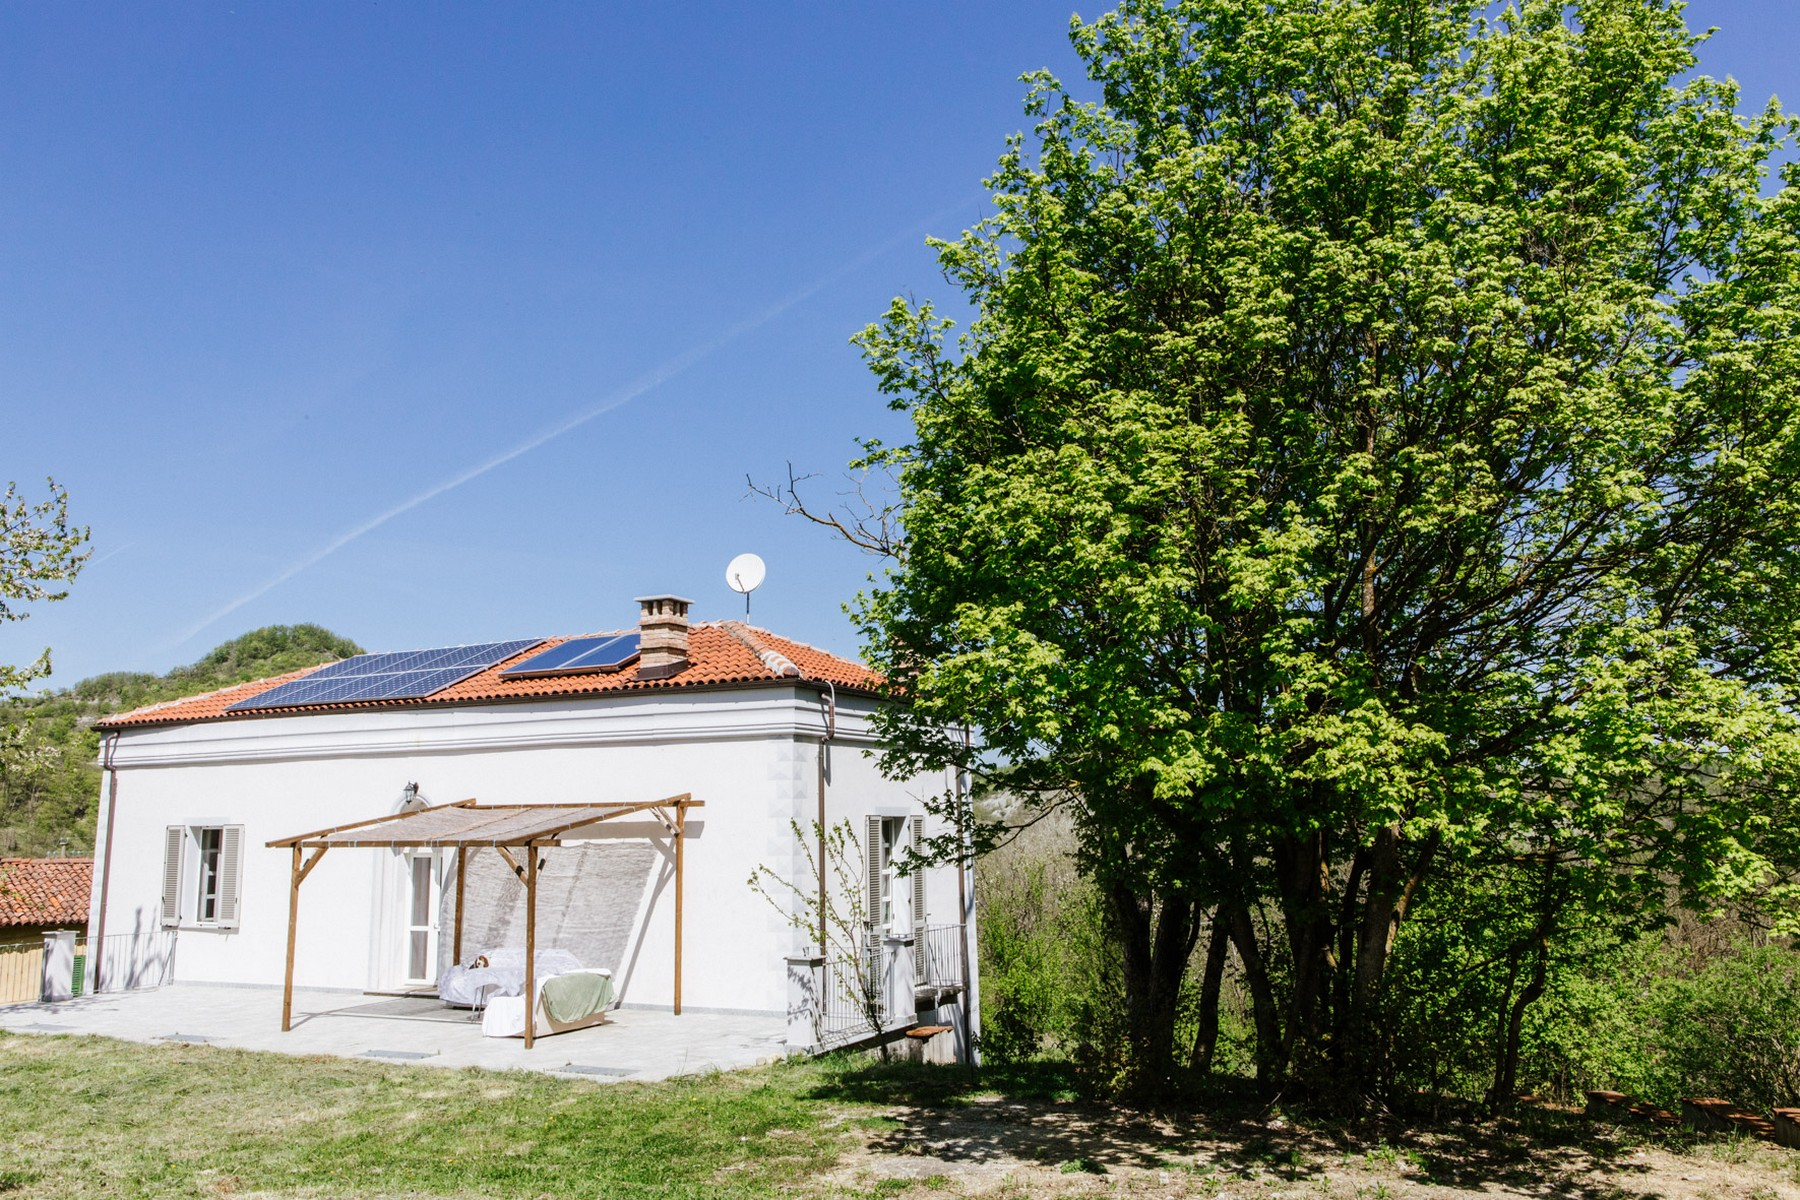 Additional photo for property listing at Seventeenth century country property renovated in 2011 Malvicino Malvicino, Alessandria 15015 Italy